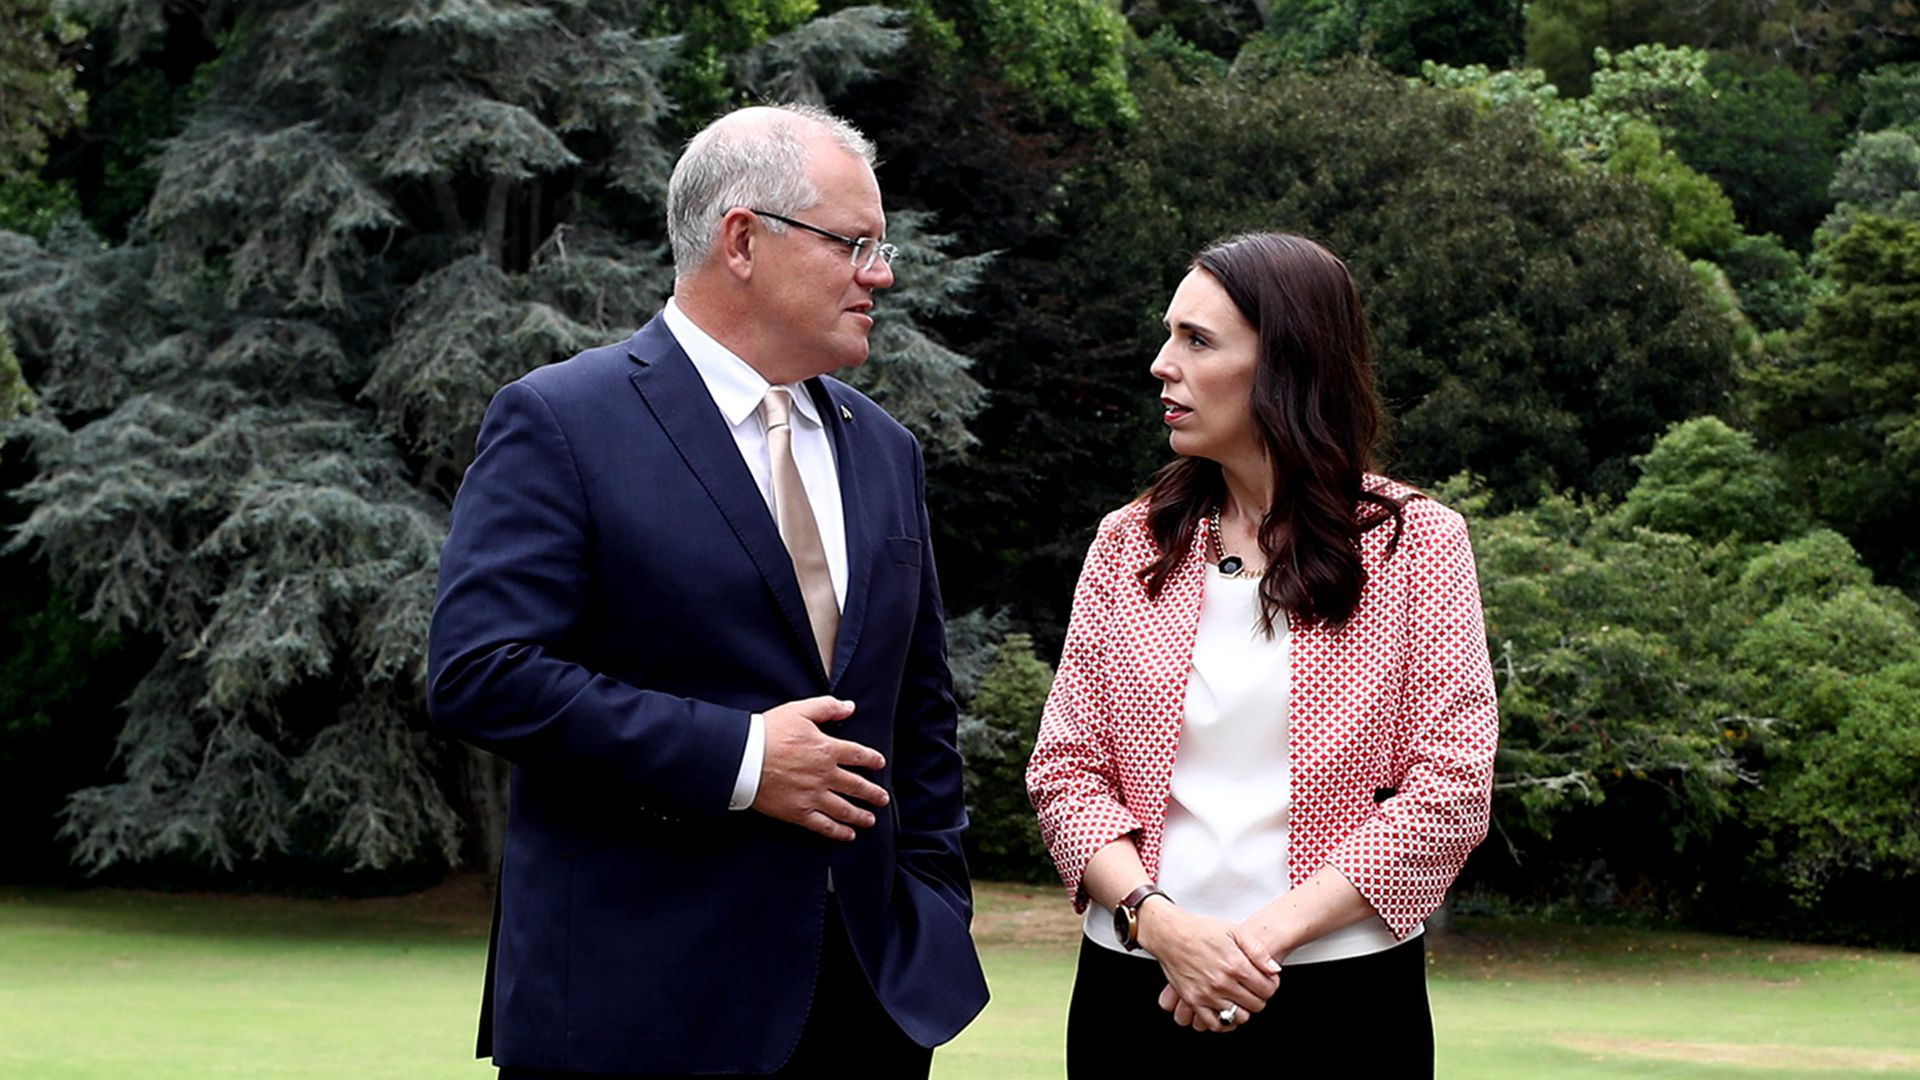 Australia's Prime Minister Scott Morrison and his New Zealand counterpart Jacinda Ardern both criticized the senator Sunday.